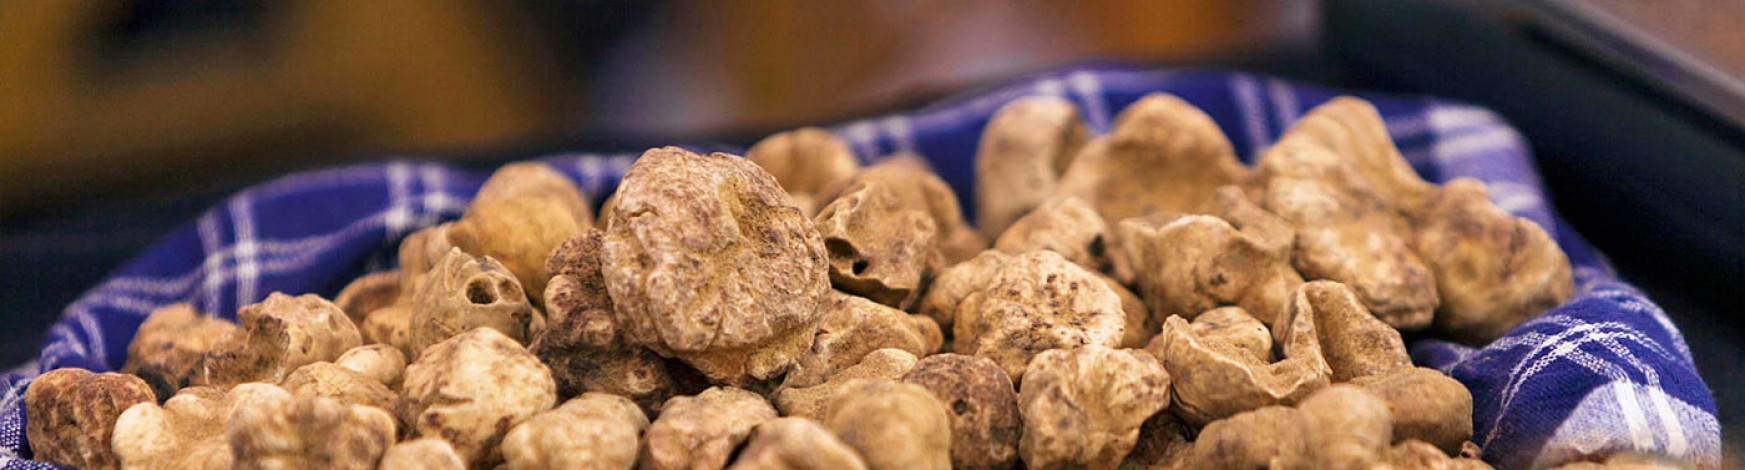 buying-white-truffles-banner